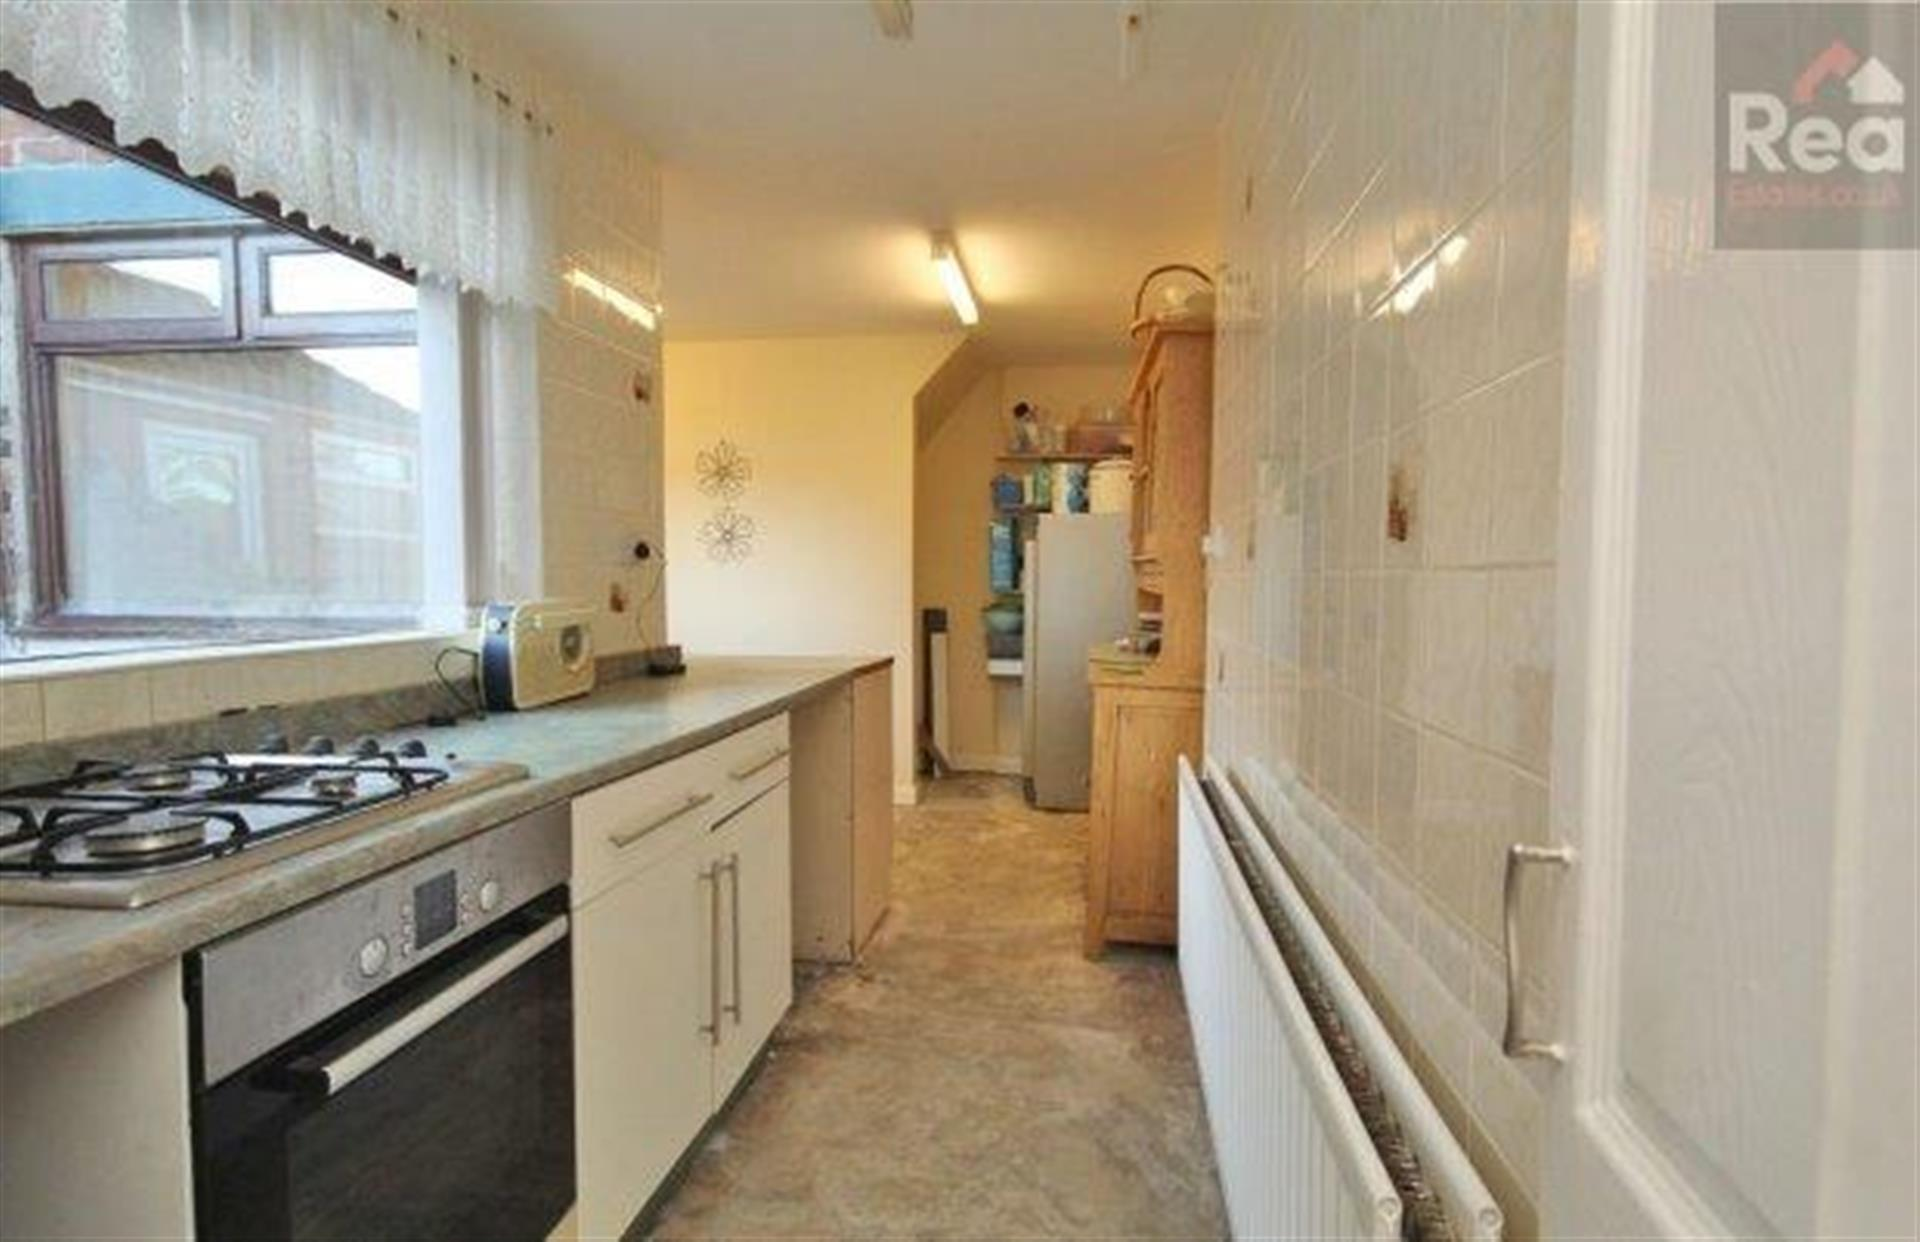 2 bedroom terraced house To Let in West Auckland - photograph 4.